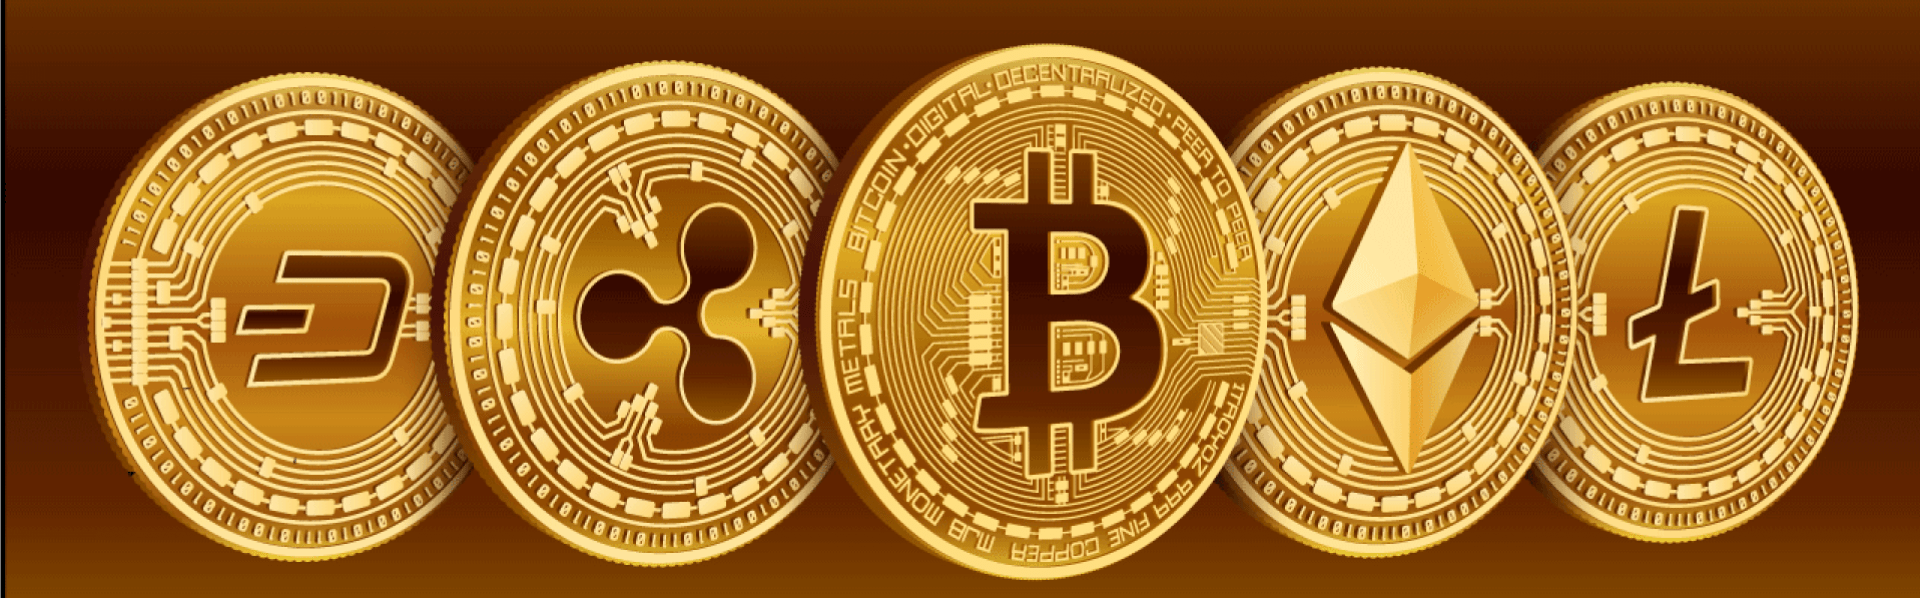 Ready To Create Your Own Cryptocurrency By Anantha Perumal Coinmonks Medium